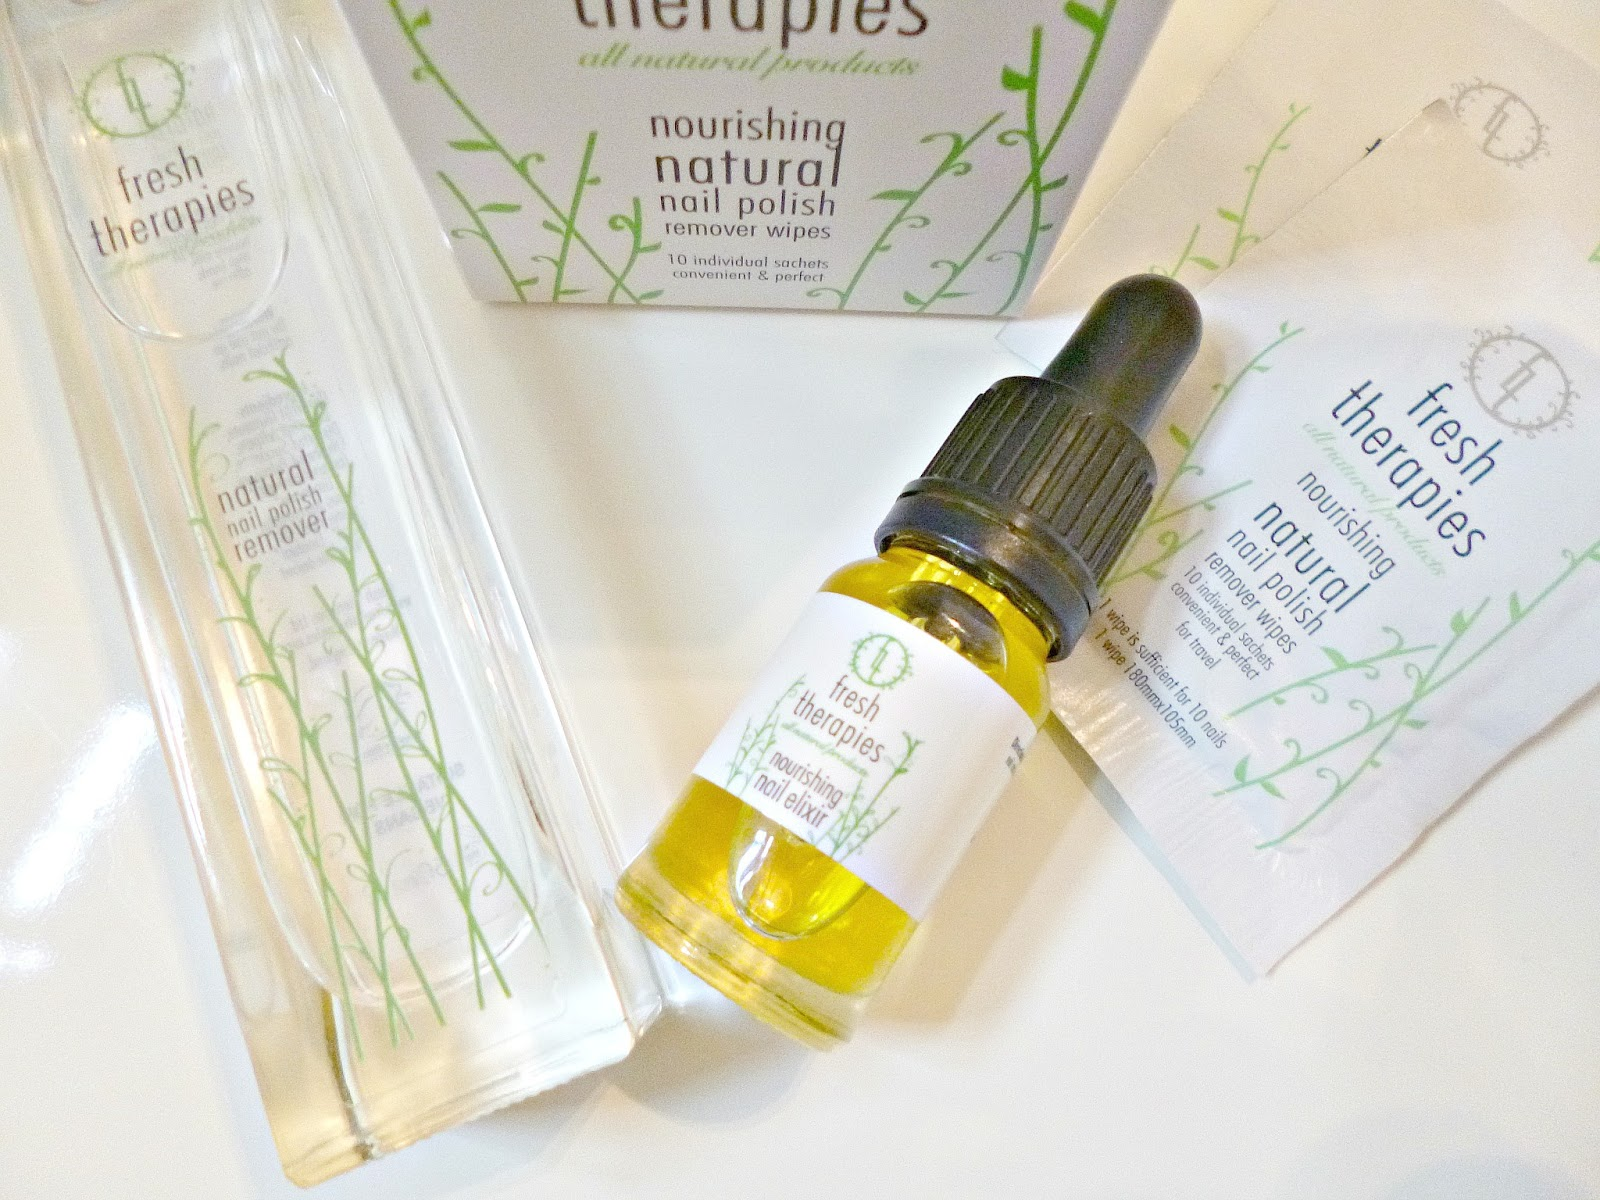 Fresh Therapies Nail care review